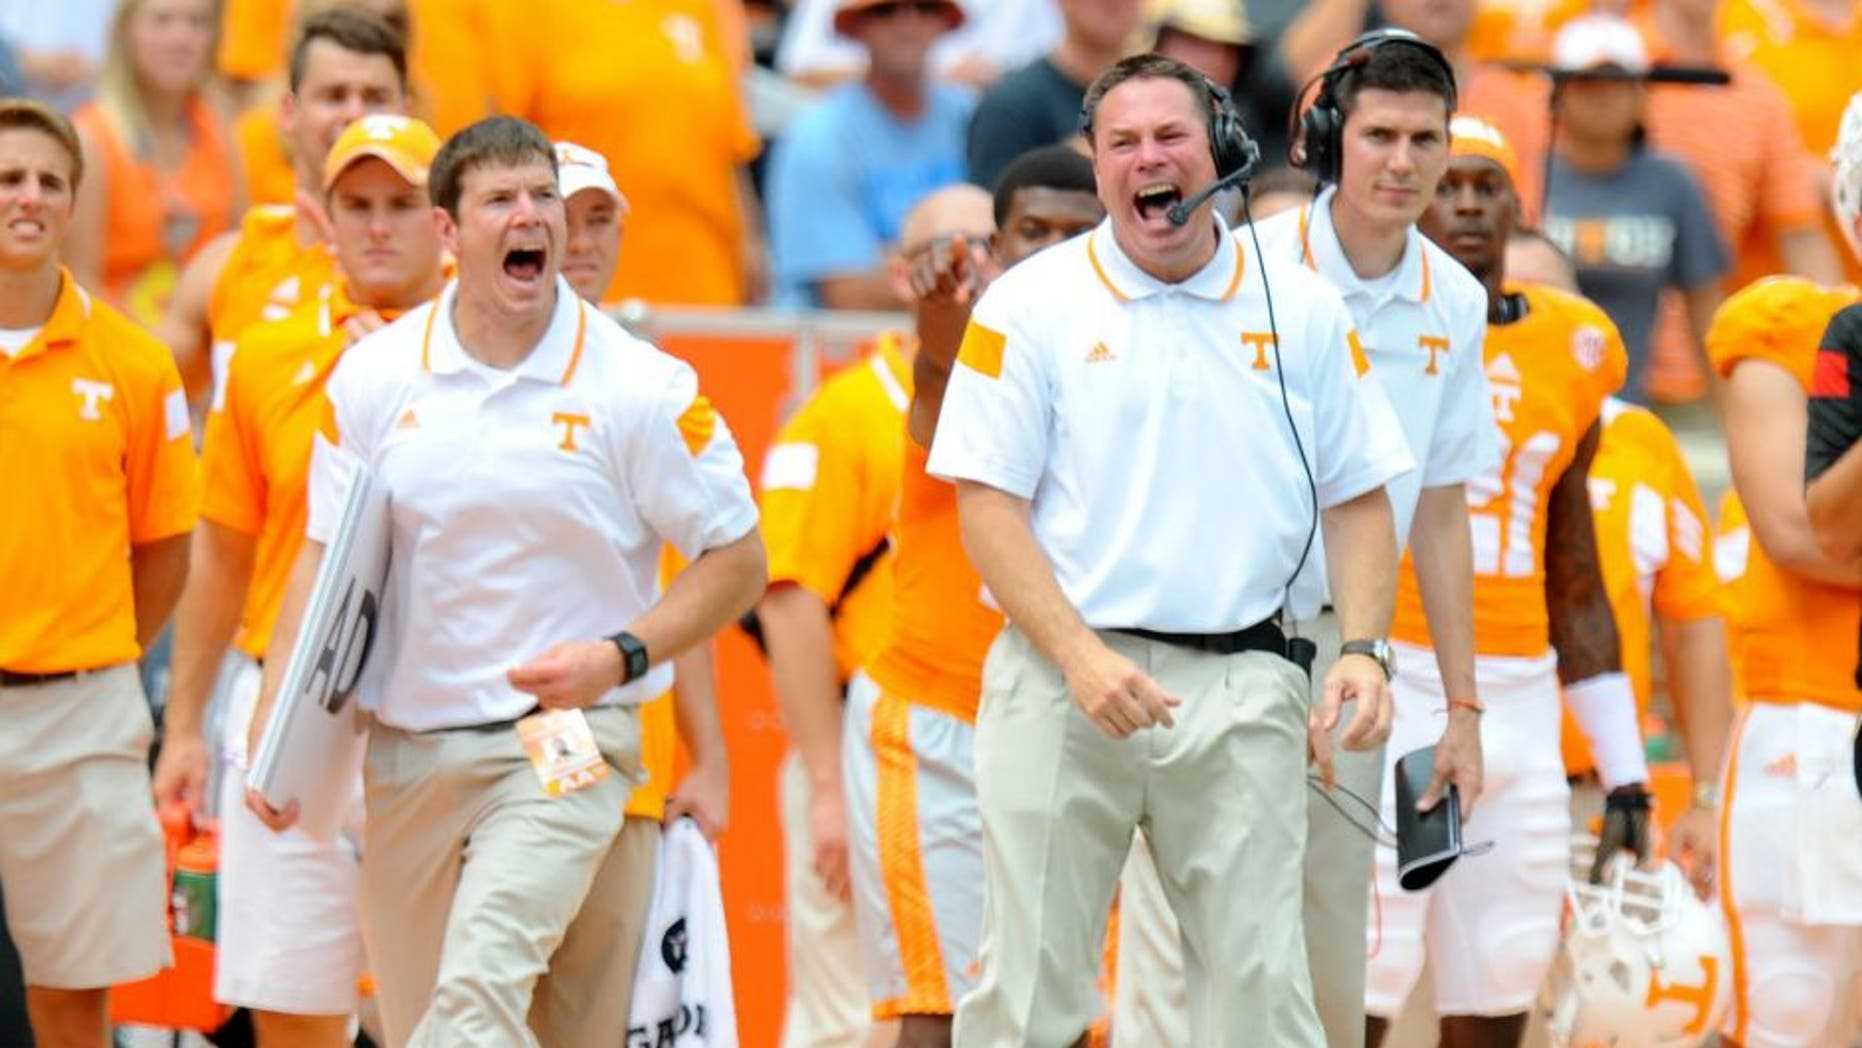 Sep 6, 2014; Knoxville, TN, USA; Tennessee Volunteers head coach Butch Jones during the second quarter against the Arkansas State Red Wolves at Neyland Stadium. Mandatory Credit: Randy Sartin-USA TODAY Sports